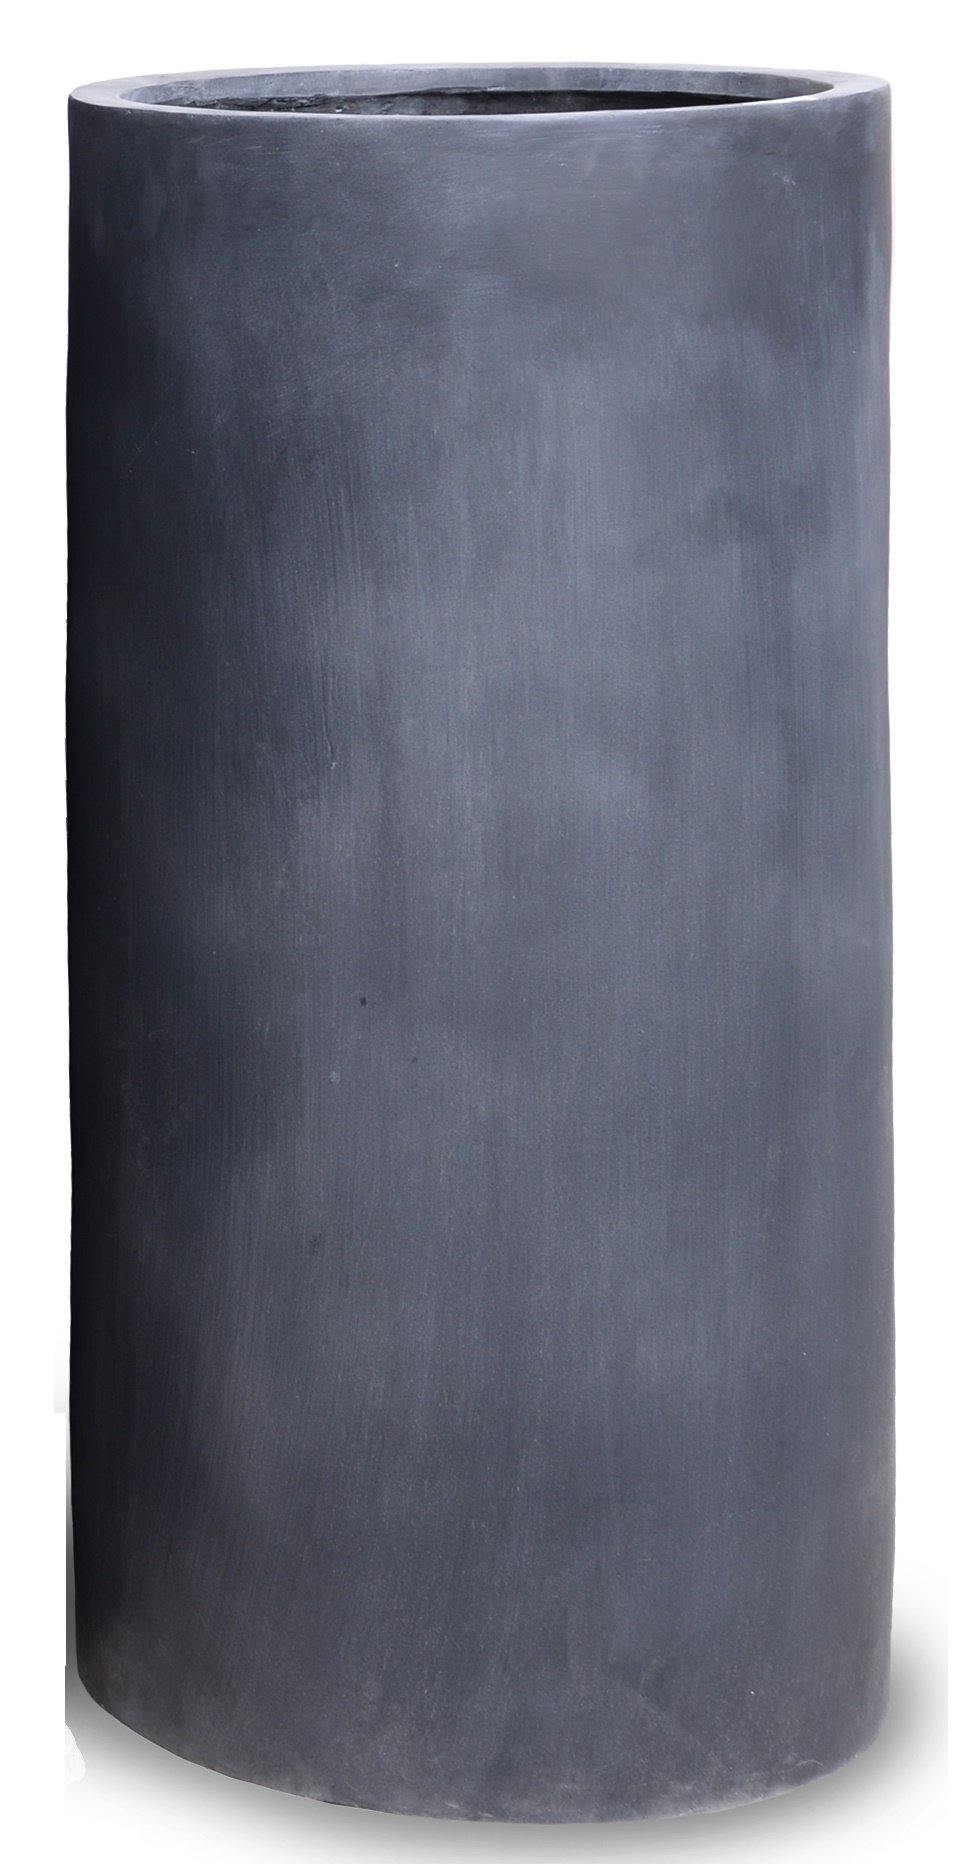 "Fiberglass Cylinder Planter with Lead Finish - 20""W"